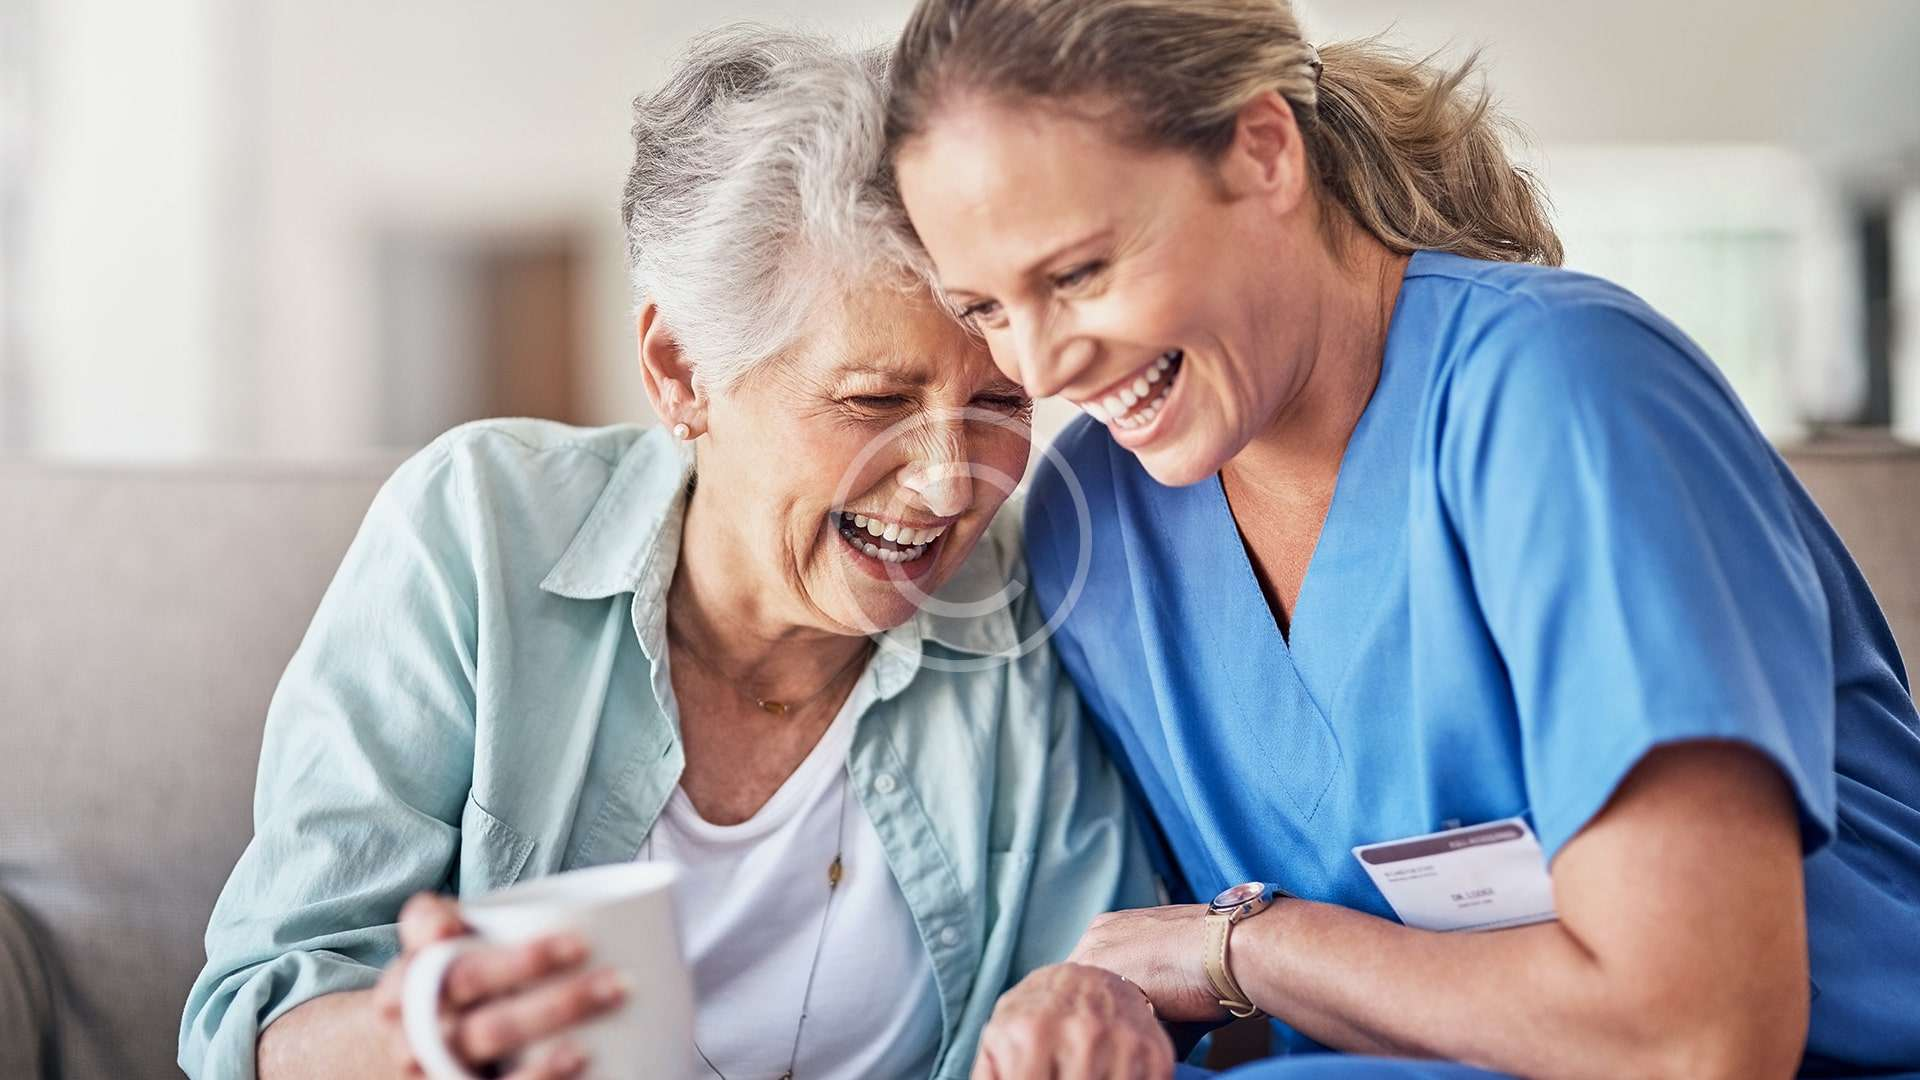 Medcare and Social Security